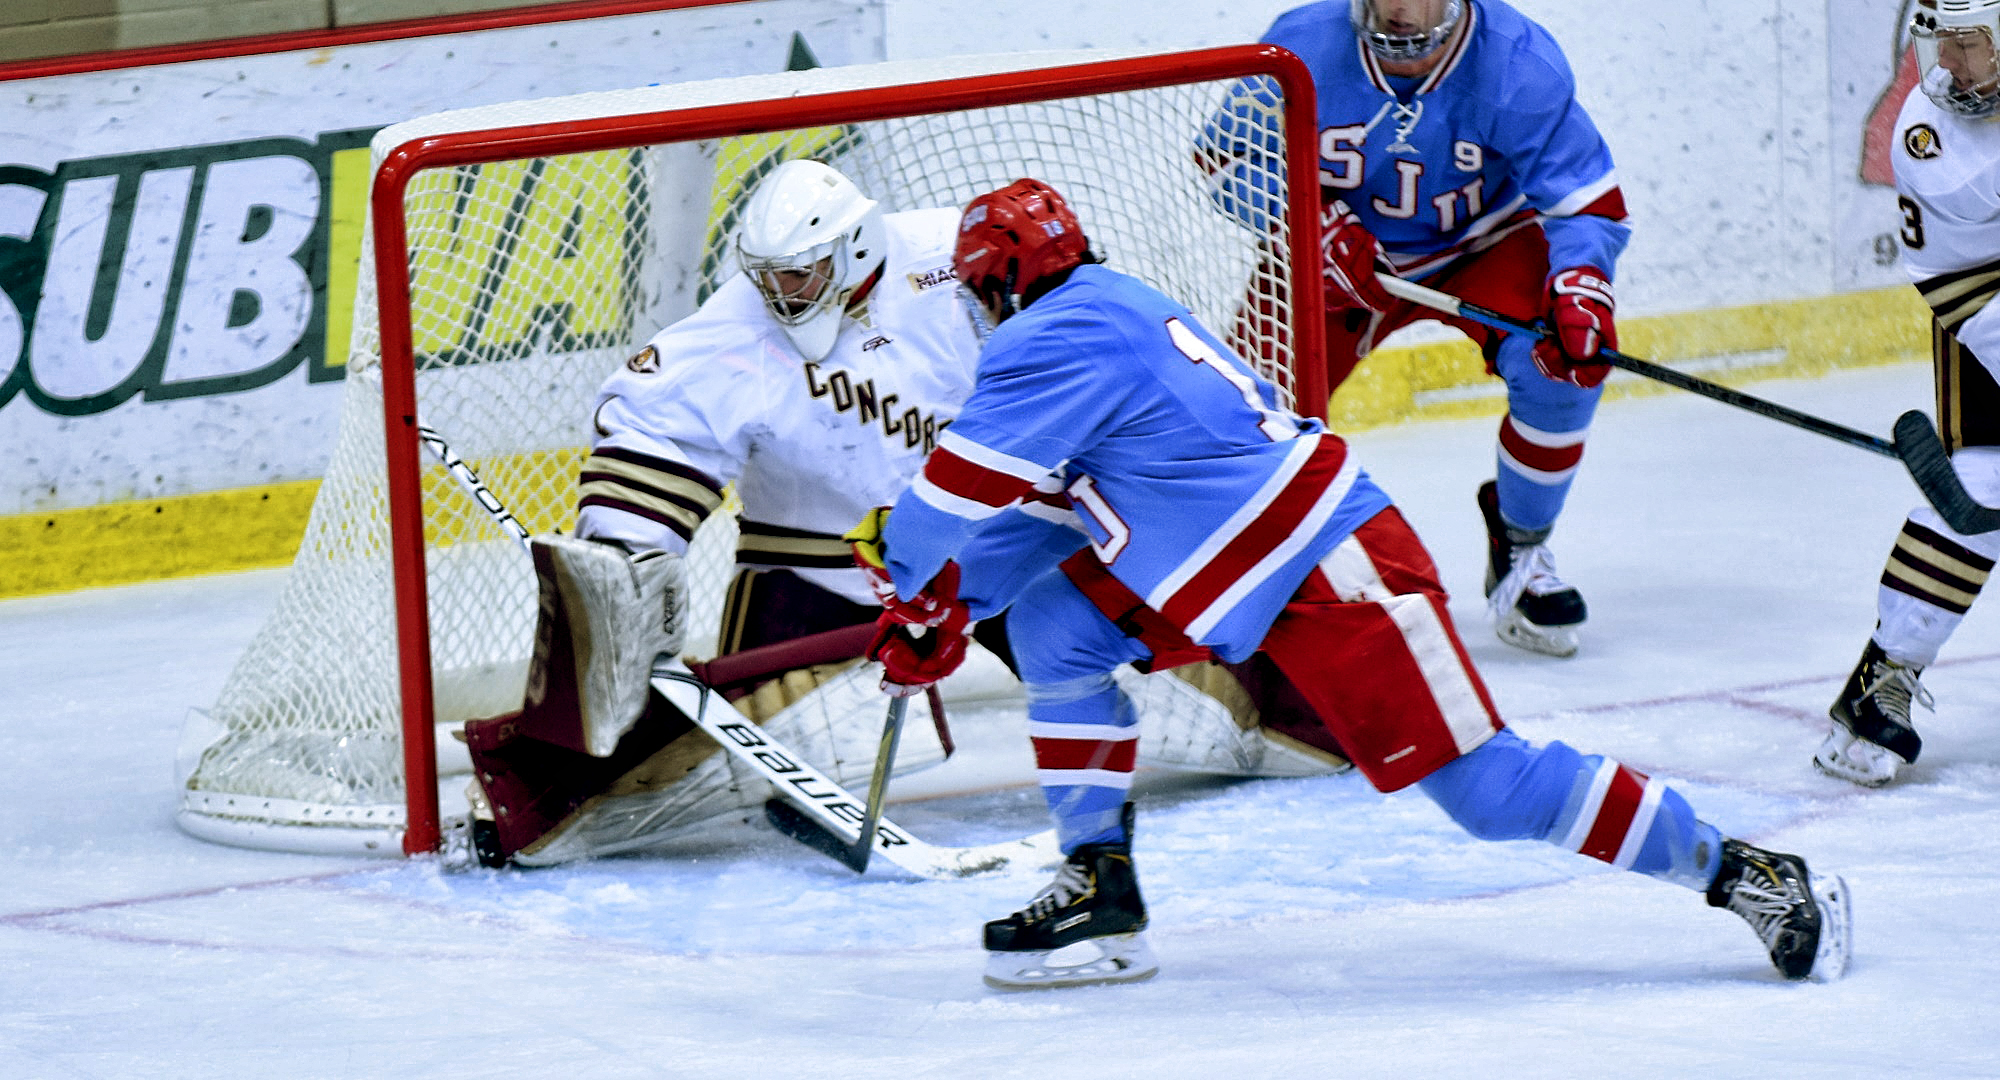 Senior goalie Jacob Stephan made 25 saves and stopped the lone shootout attempt as the Cobbers took five points on the weekend at St. John's. Stephan is unbeaten in his last three games.